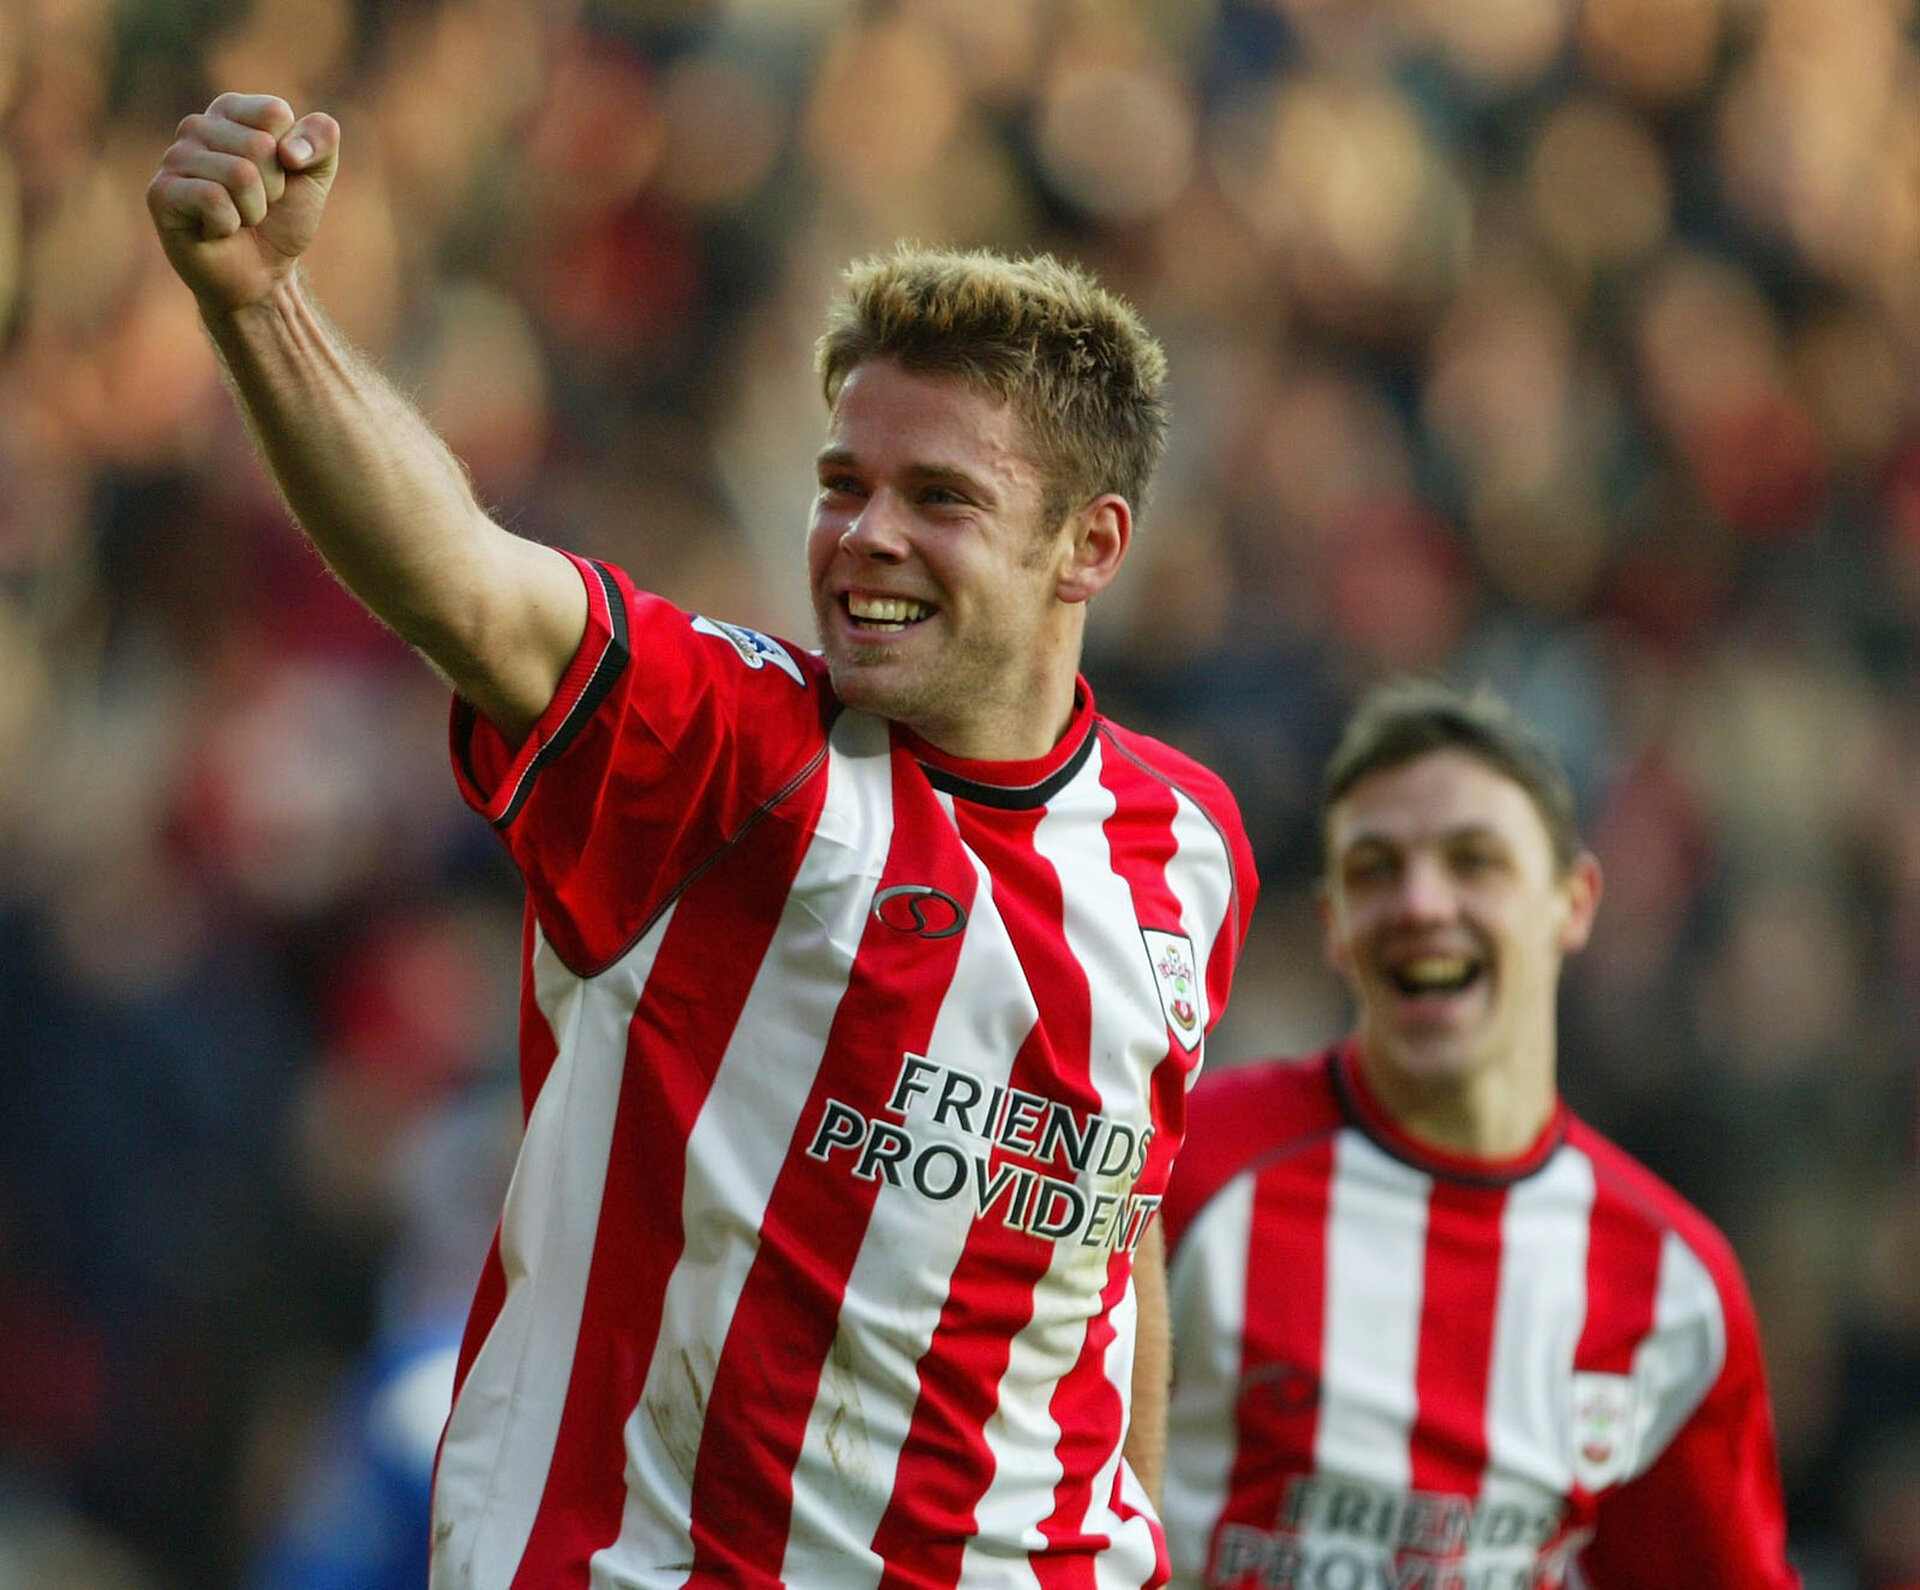 SOUTHAMPTON, ENGLAND - DECEMBER 21:  James Beattie of Southampton celebrates scoring the third goal during the FA Barclaycard Premiership match between Southampton and Portsmouth at St Mary's Stadium  on December 21, 2003, in Southampton, England.  (Photo by Mike Hewitt/Getty Images)